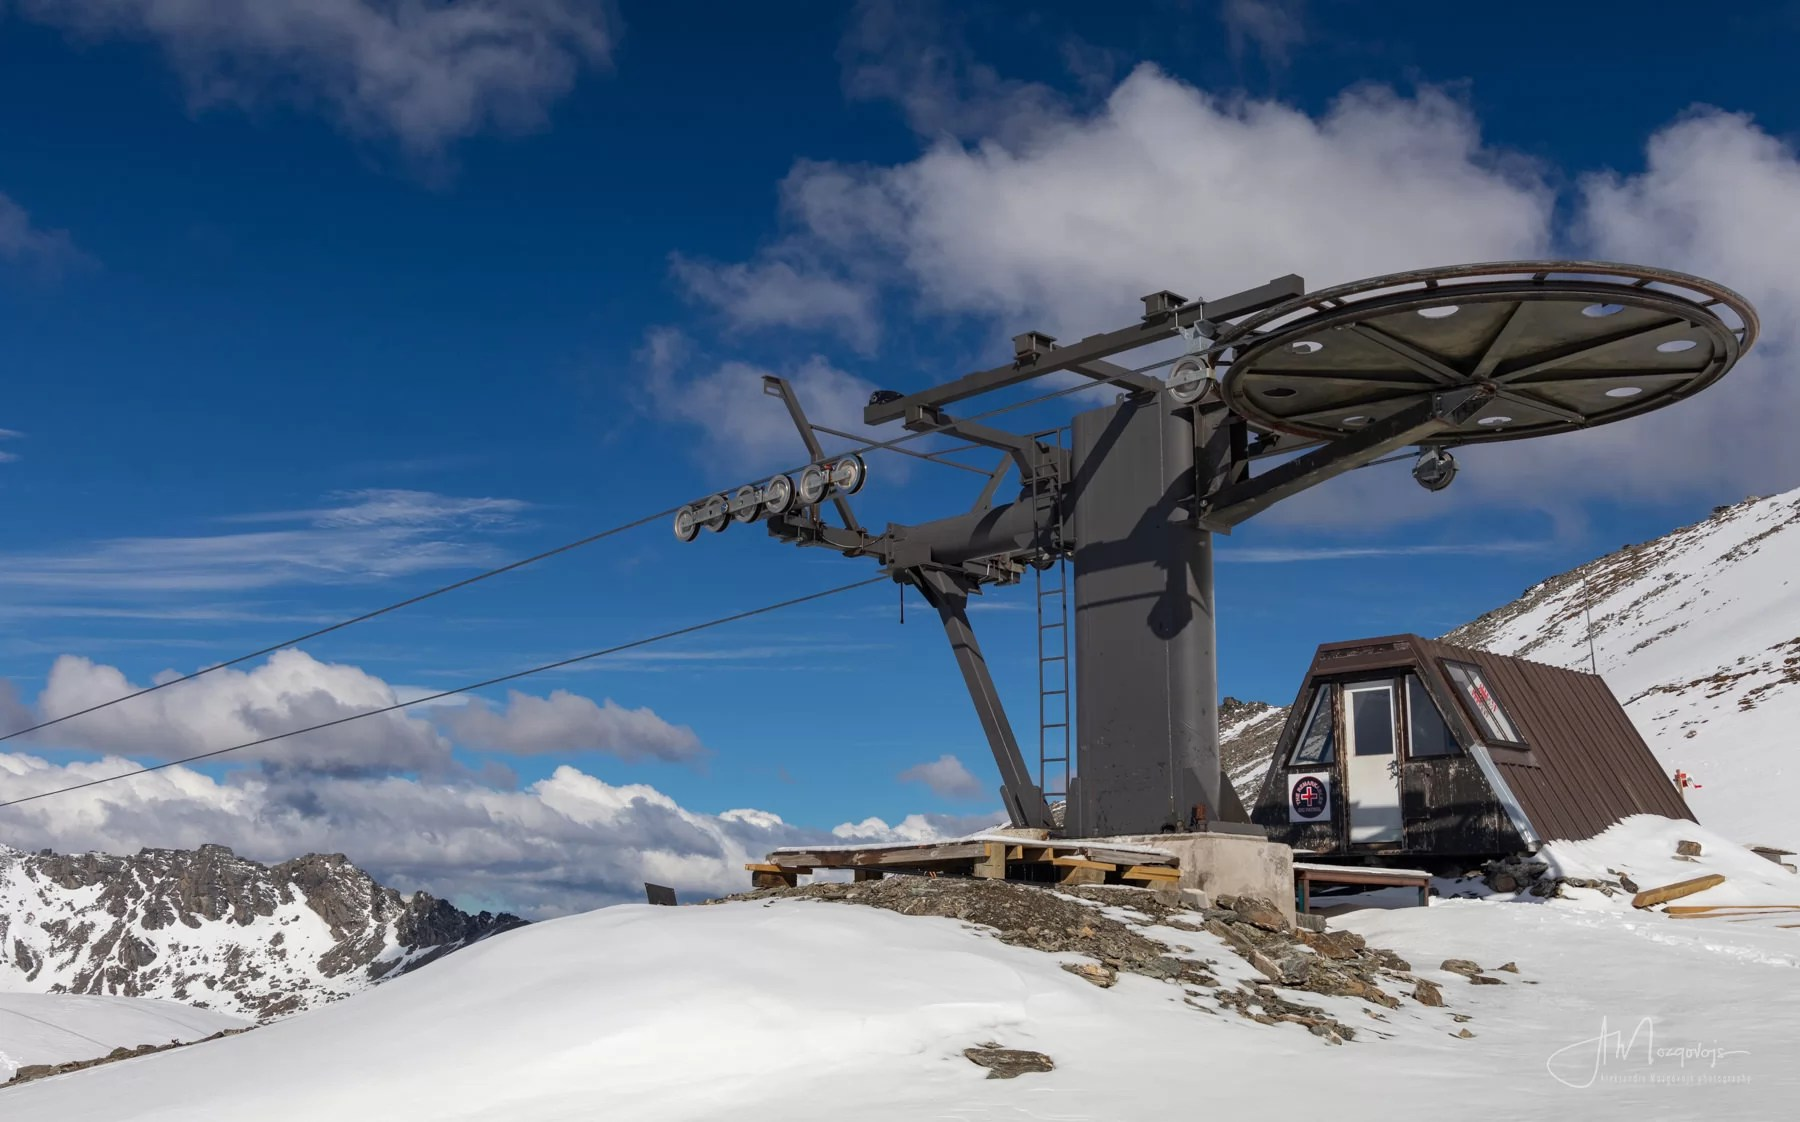 Upper ski lift, Remarkables Range, New Zealand